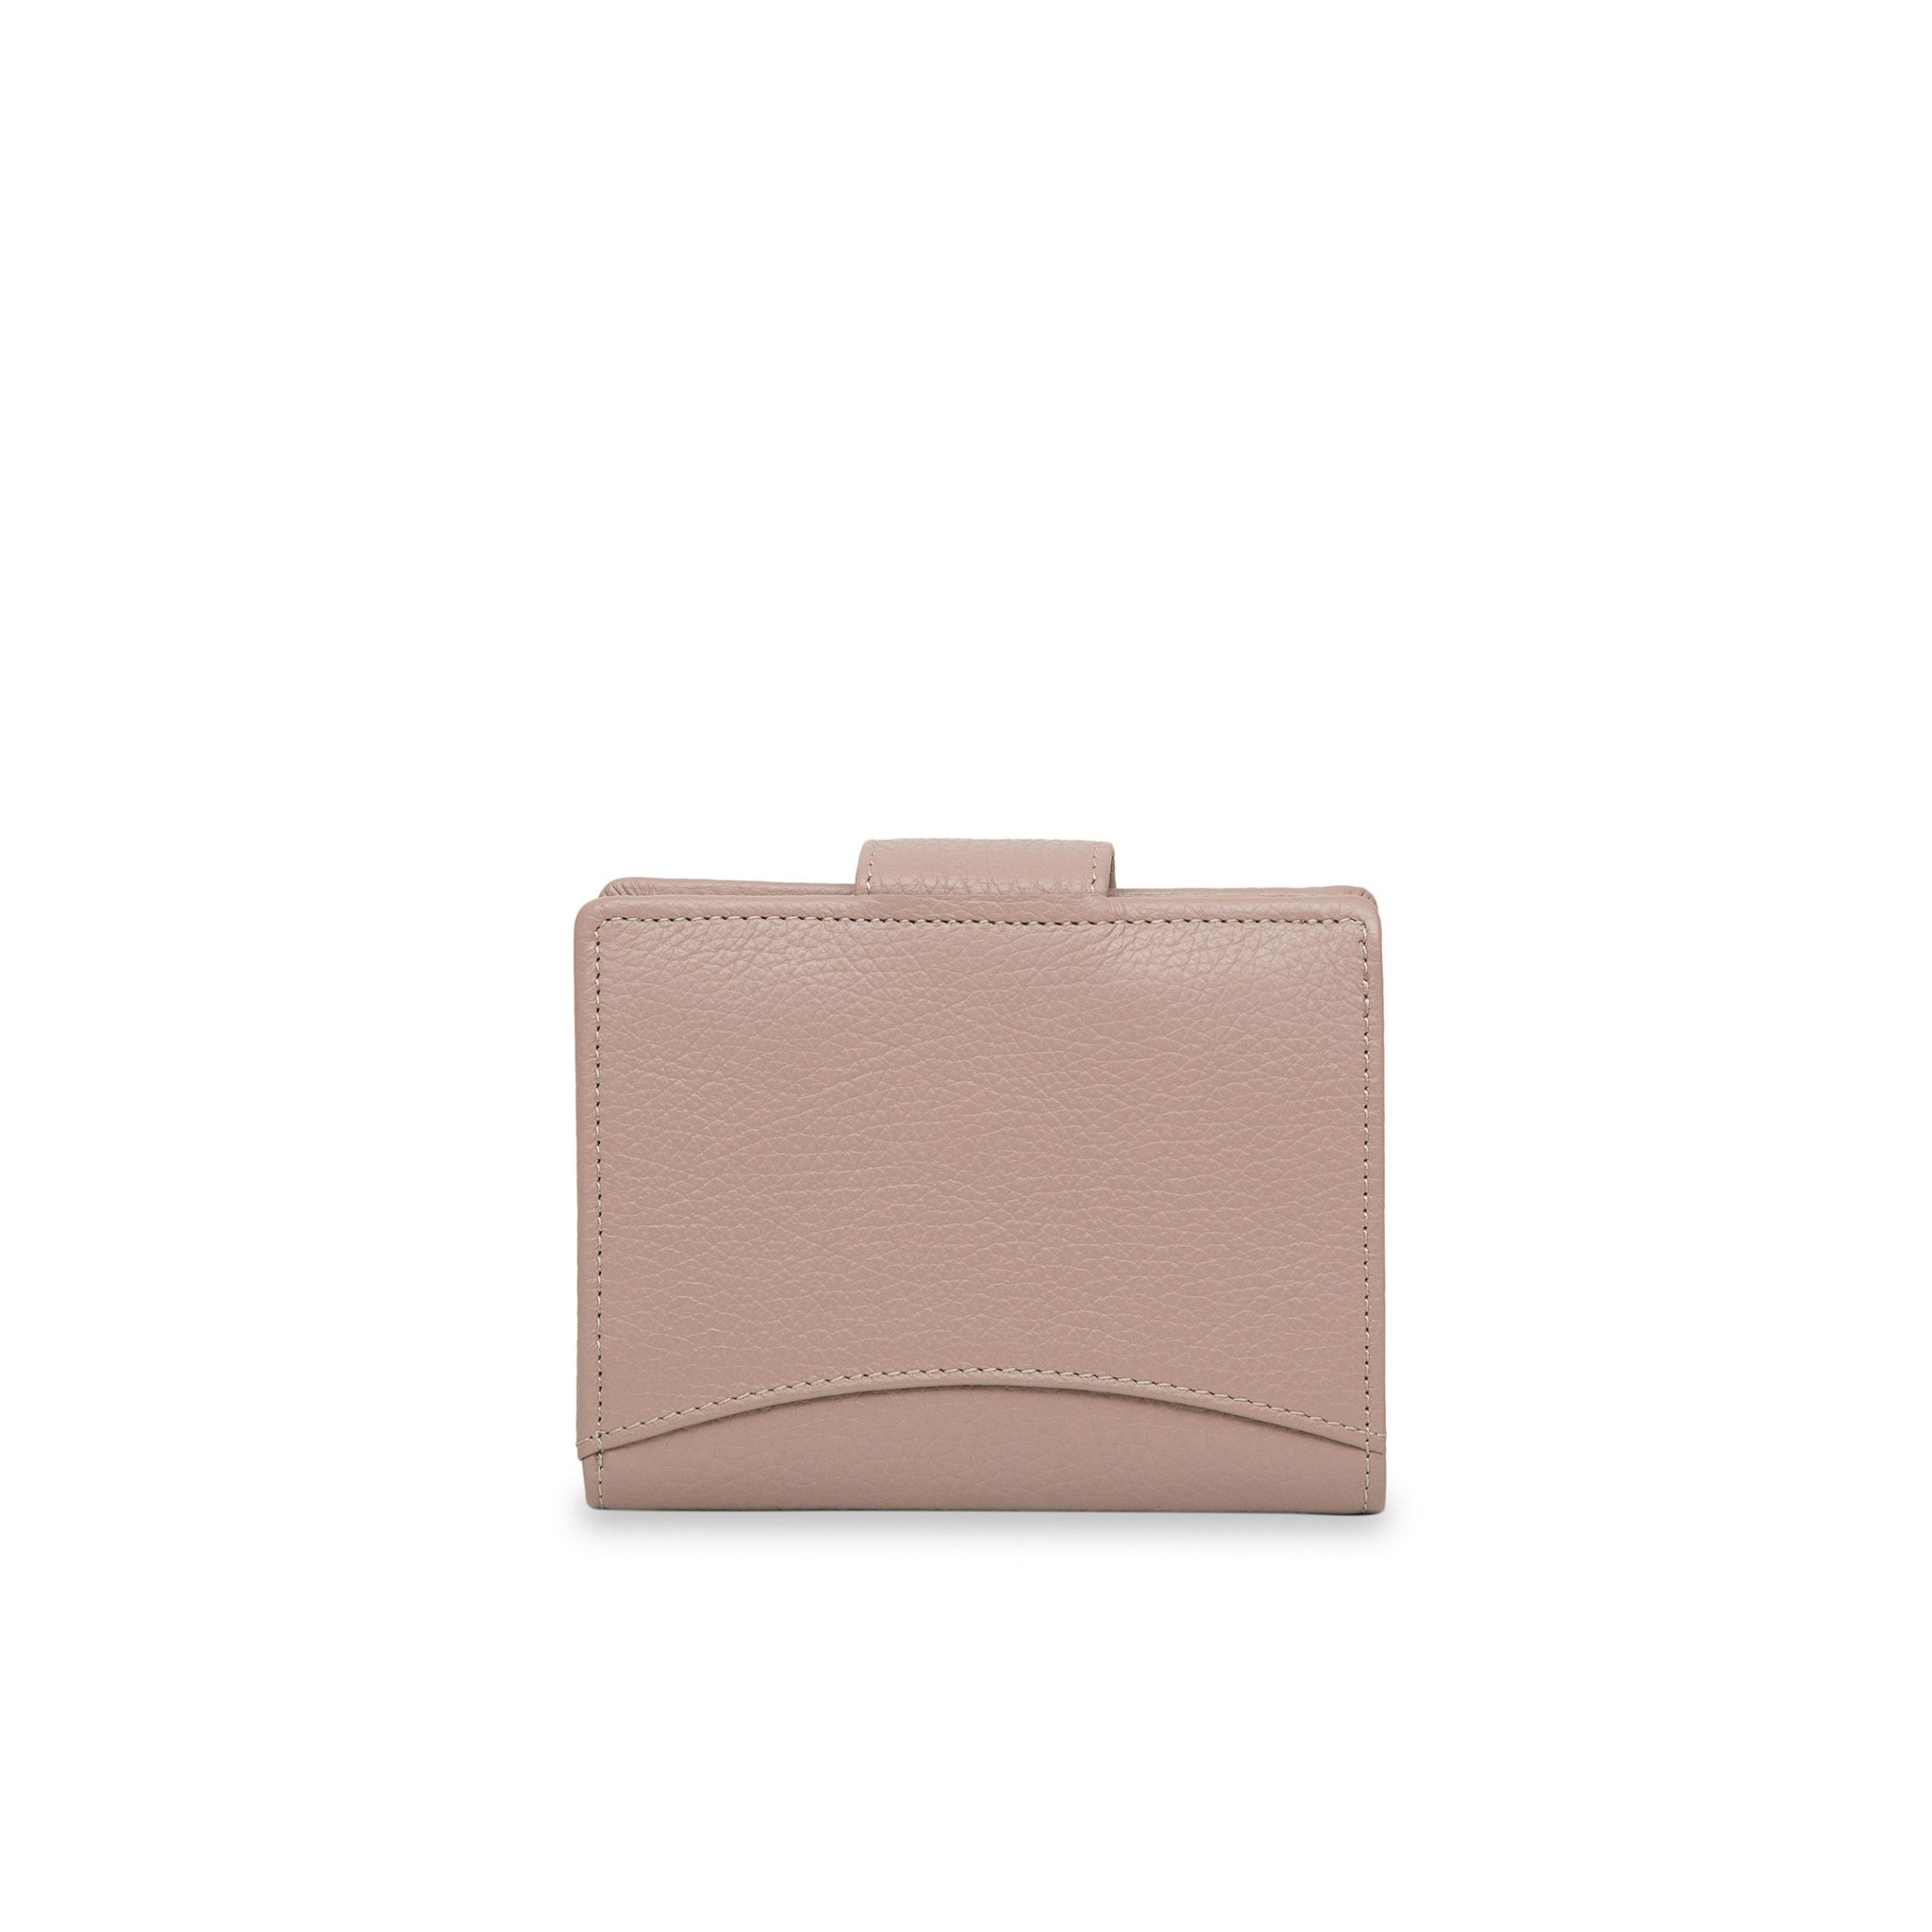 Nude small Rimini leather wallet